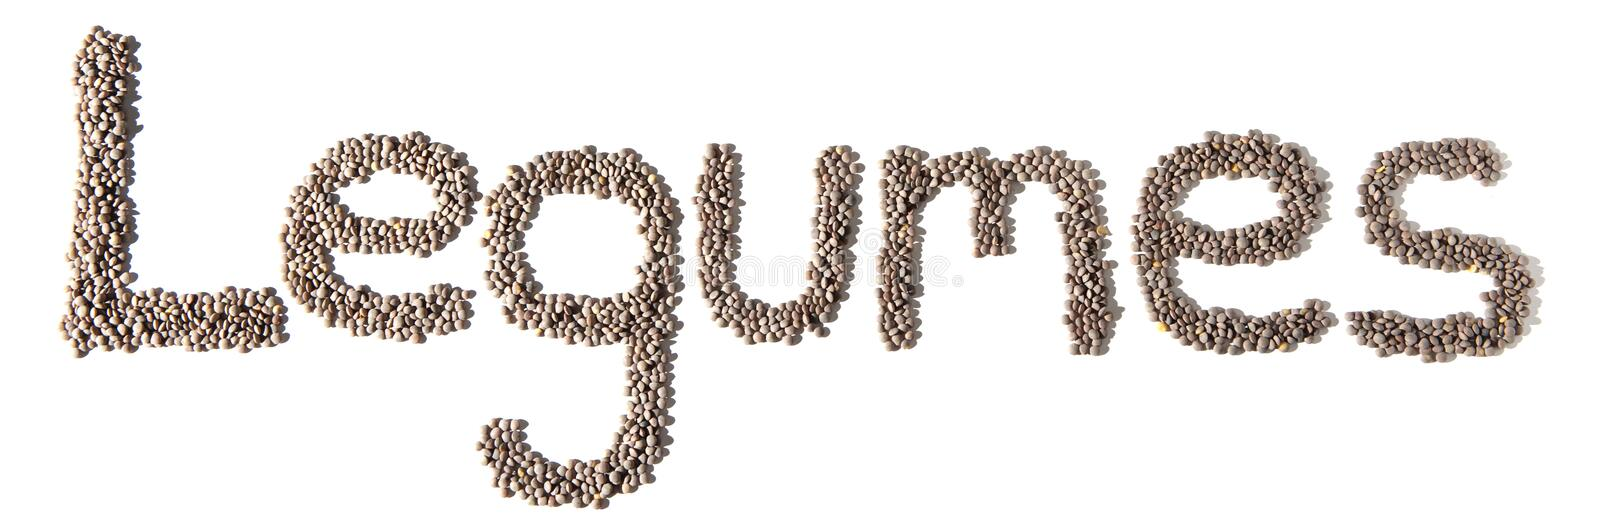 Word legumes written with lentils. Isolated over white background royalty free stock photography